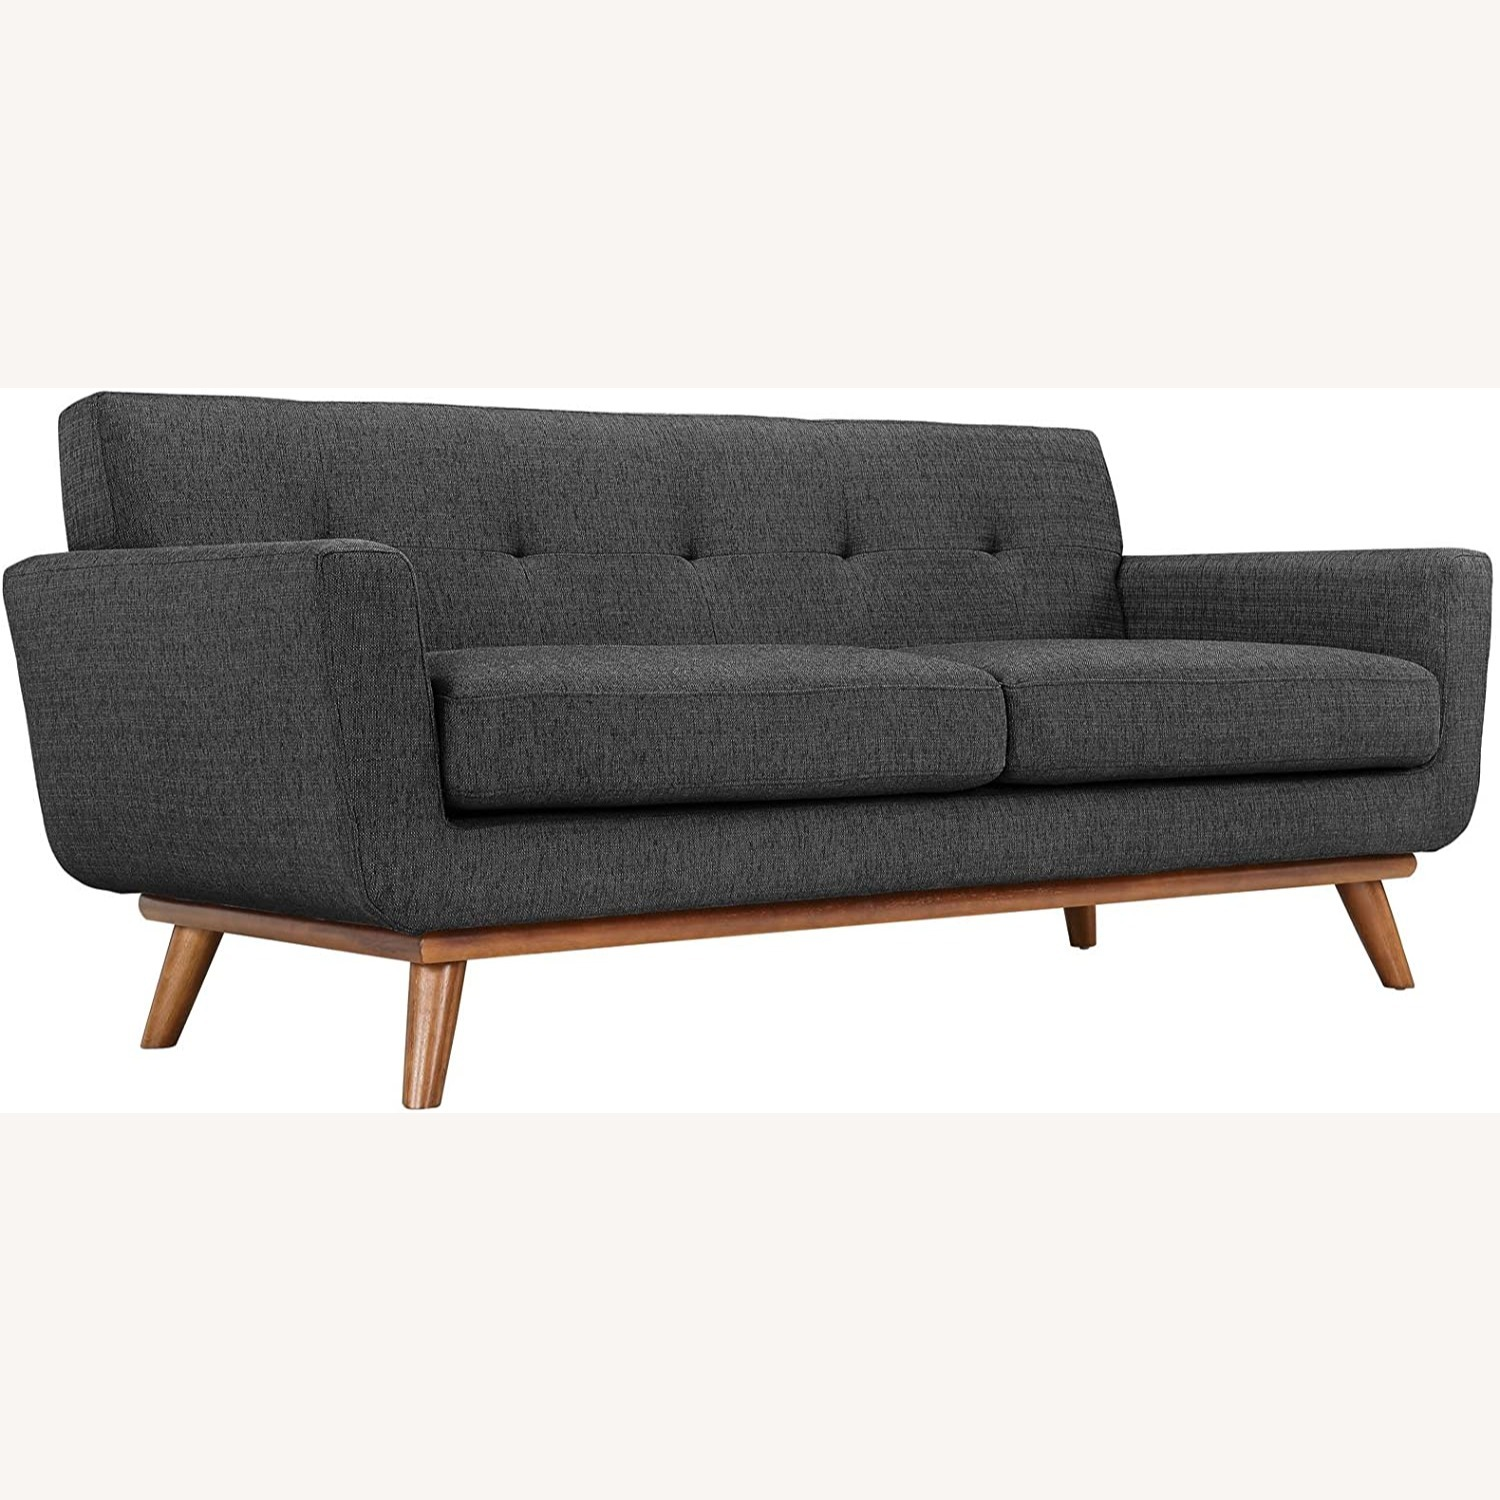 Modern Loveseat In Gray Fabric Upholstery - image-0